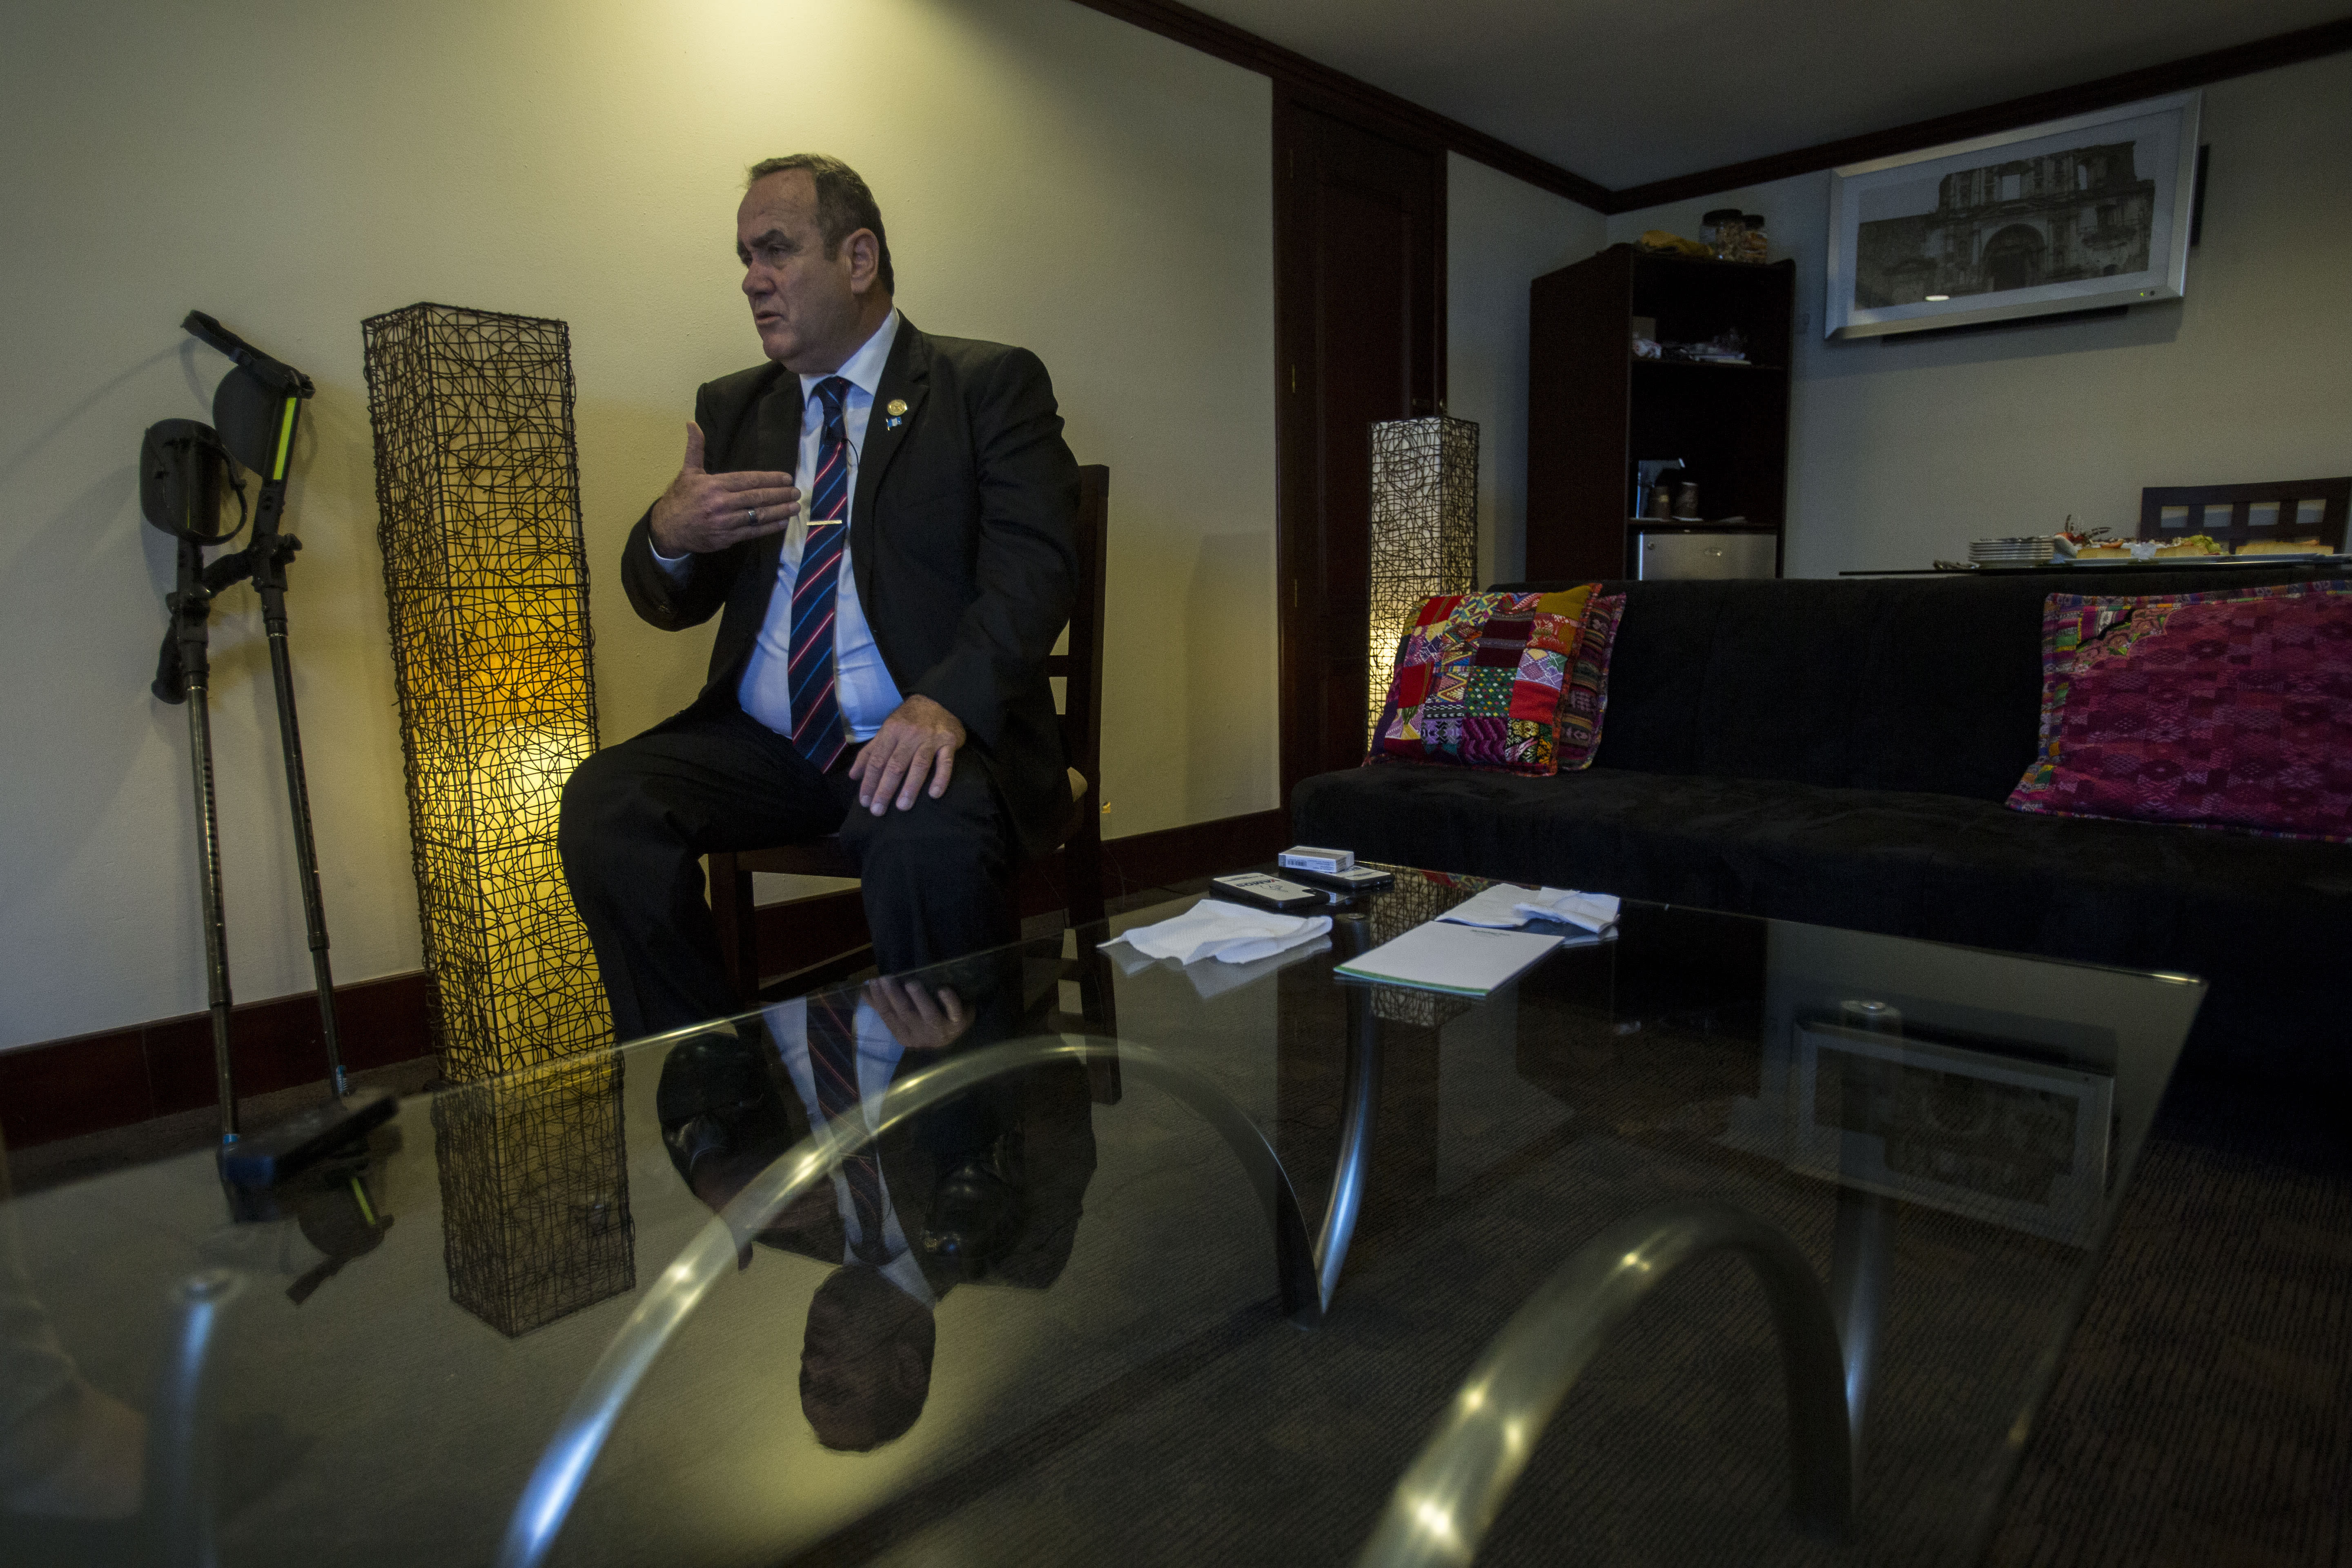 """Guatemala's President-elect Alejandro Giammattei gives an interview in Guatemala City, Tuesday, Aug. 13, 2019. Giammattei said Tuesday that his country isn't able to hold up its side of an immigration agreement with the United States or serve as a """"safe third country"""" for asylum seekers. (AP Photo/Oliver de Ros)"""